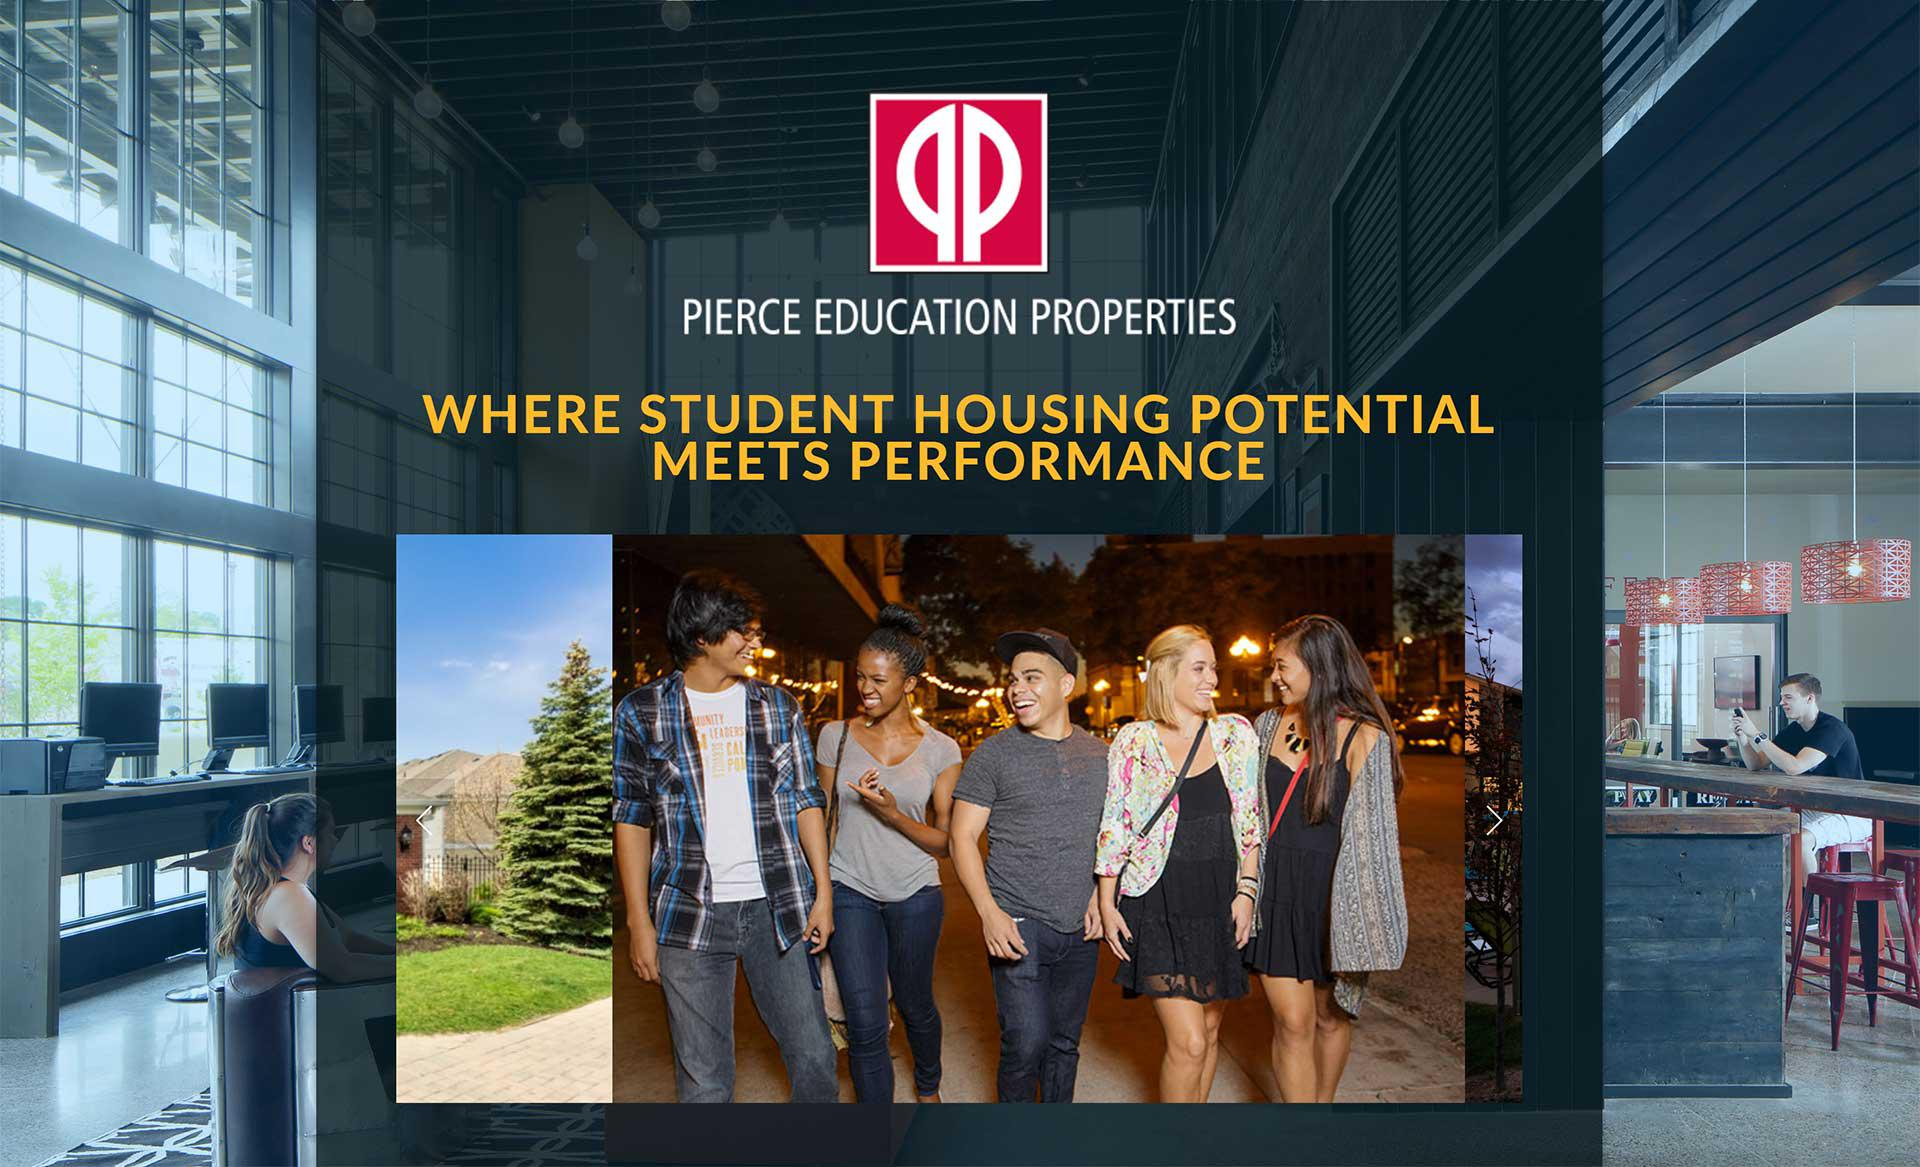 Pierce Education Properties